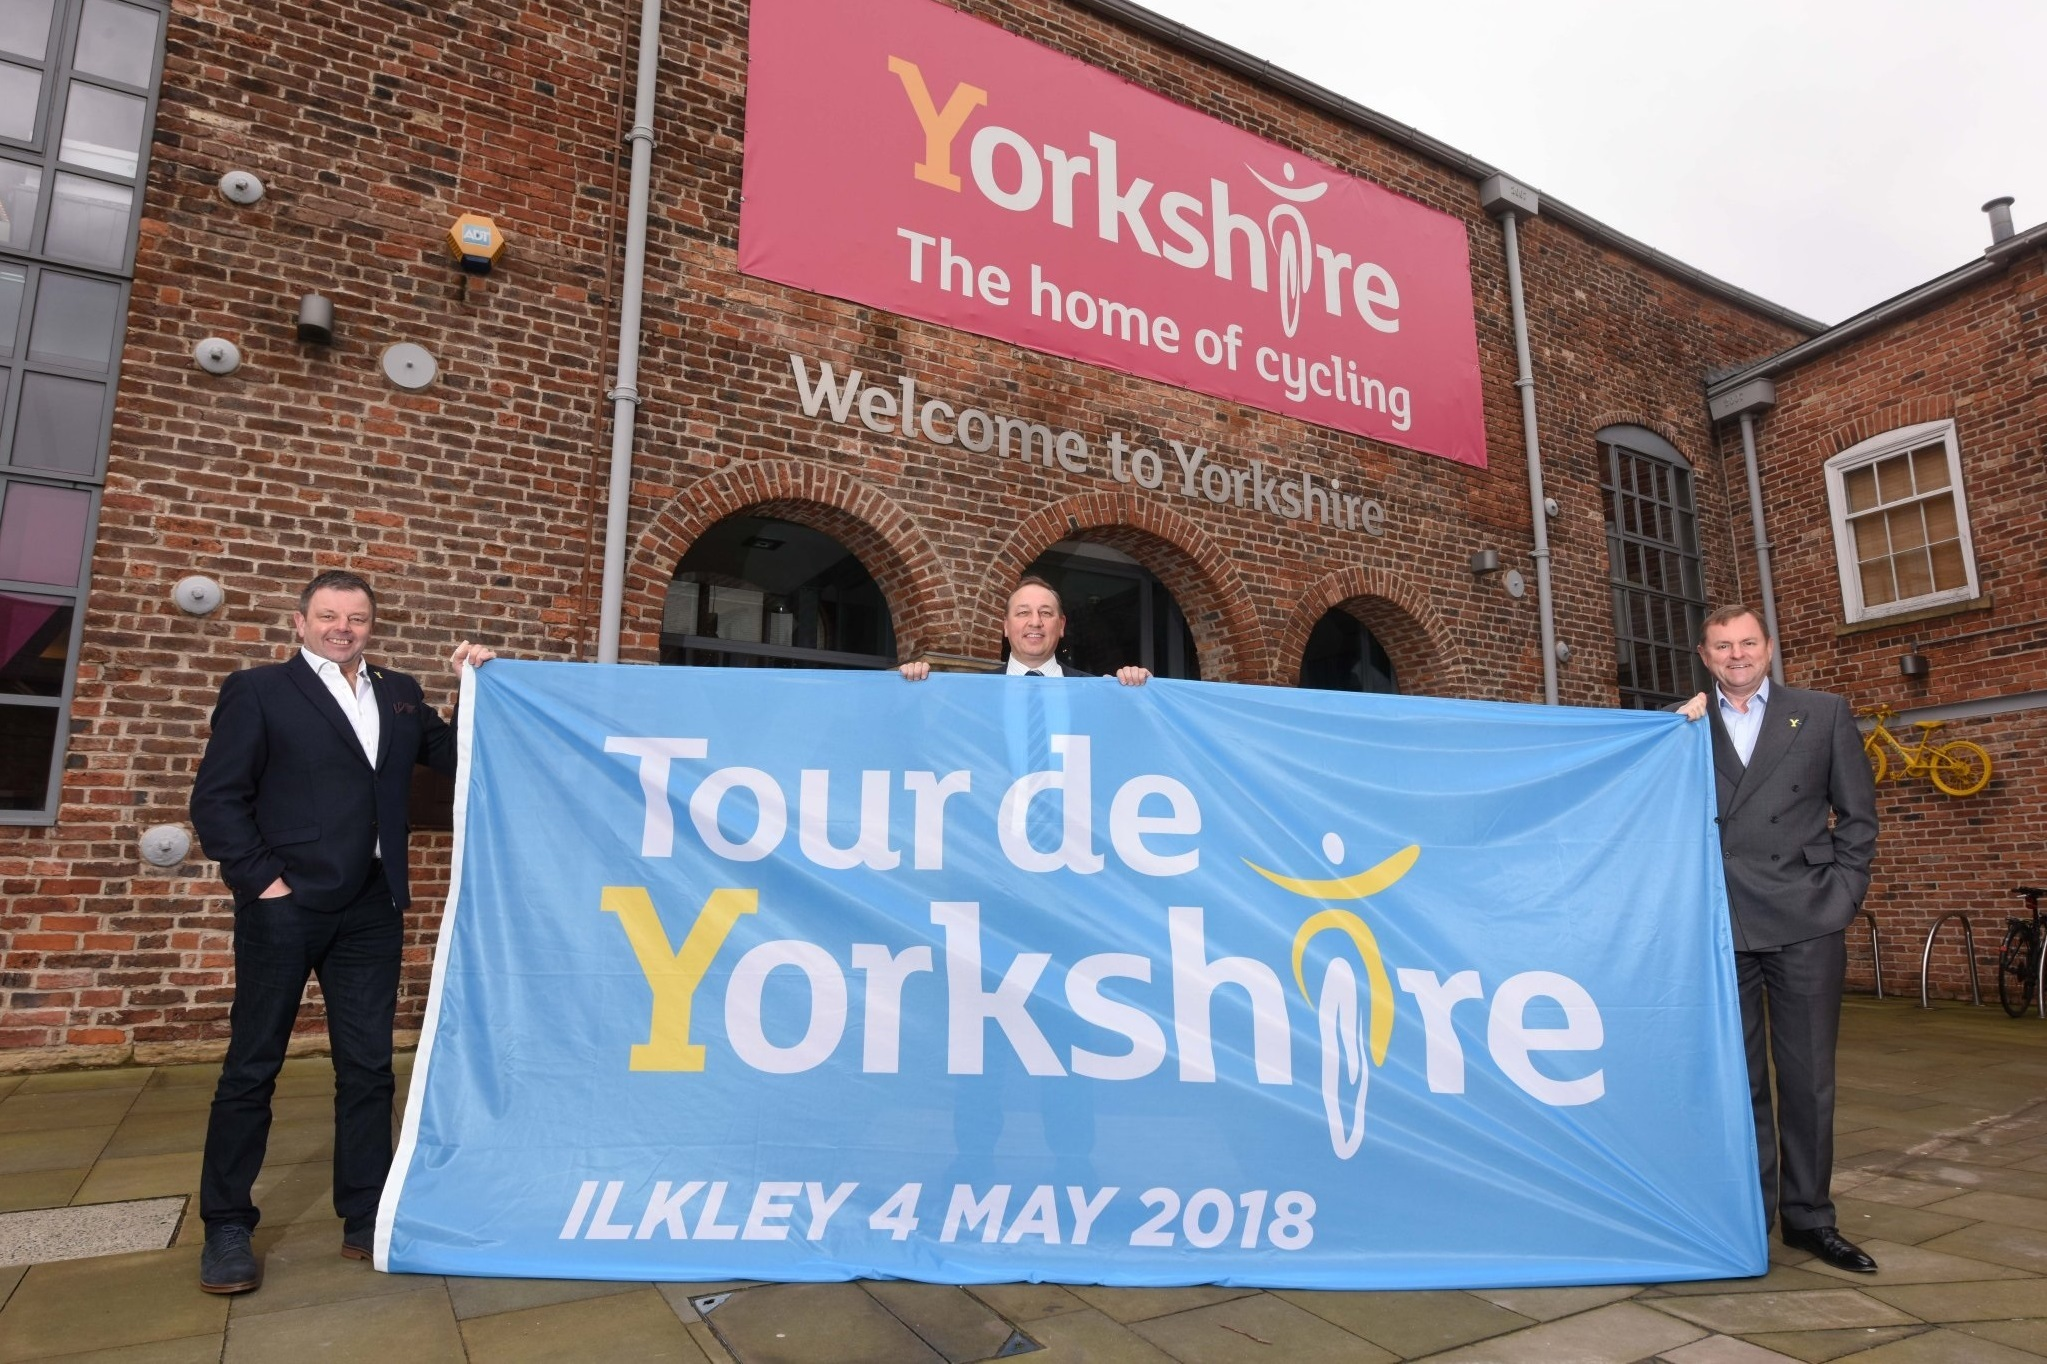 The Ilkley flag which will be raised at 1pm on April 19